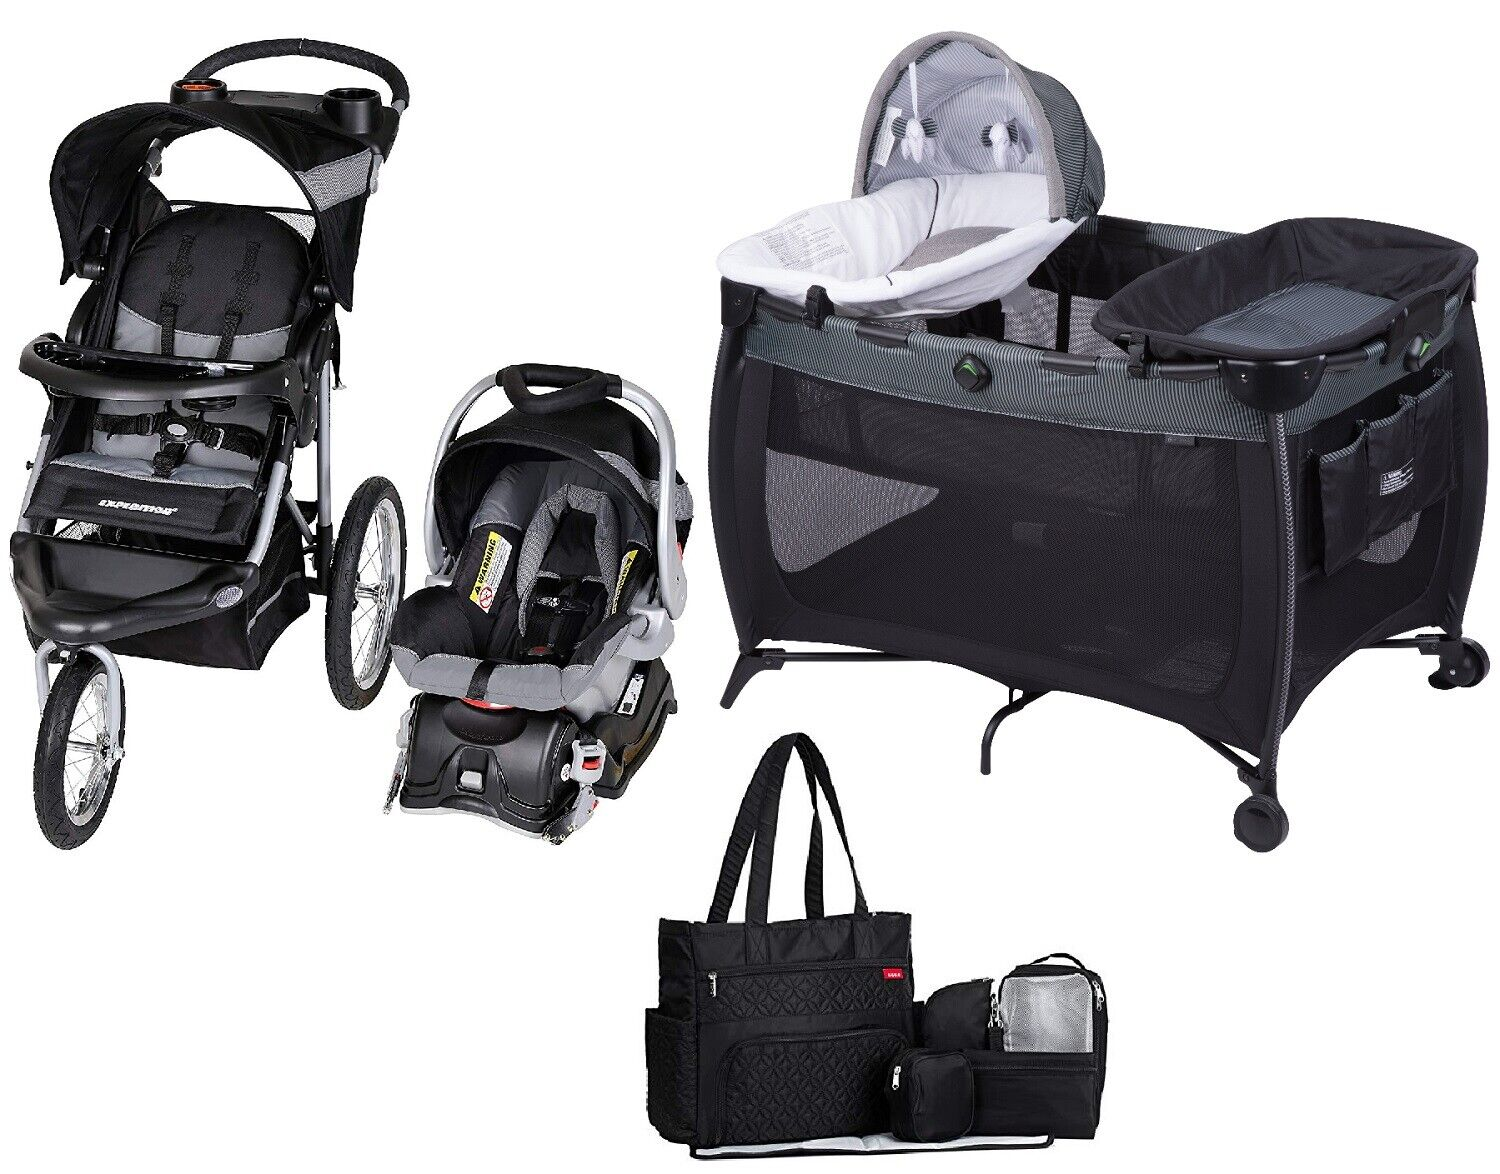 Baby Jogger Stroller with Car Seat Infant Playard Diaper Bag